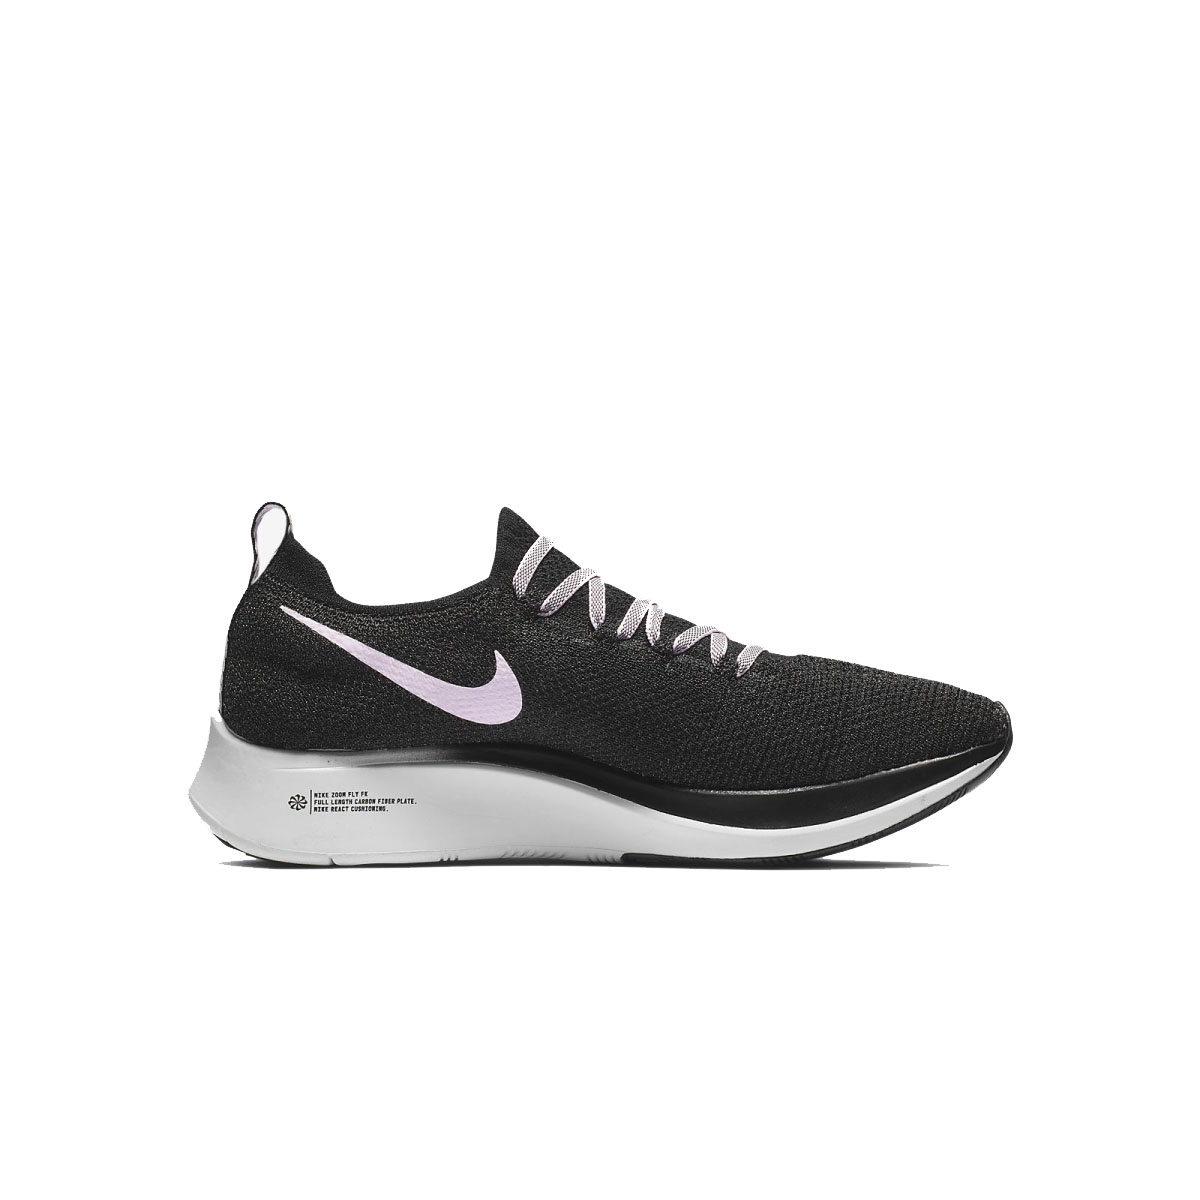 new product 29f1a 34159 Nike Zoom Fly Flyknit